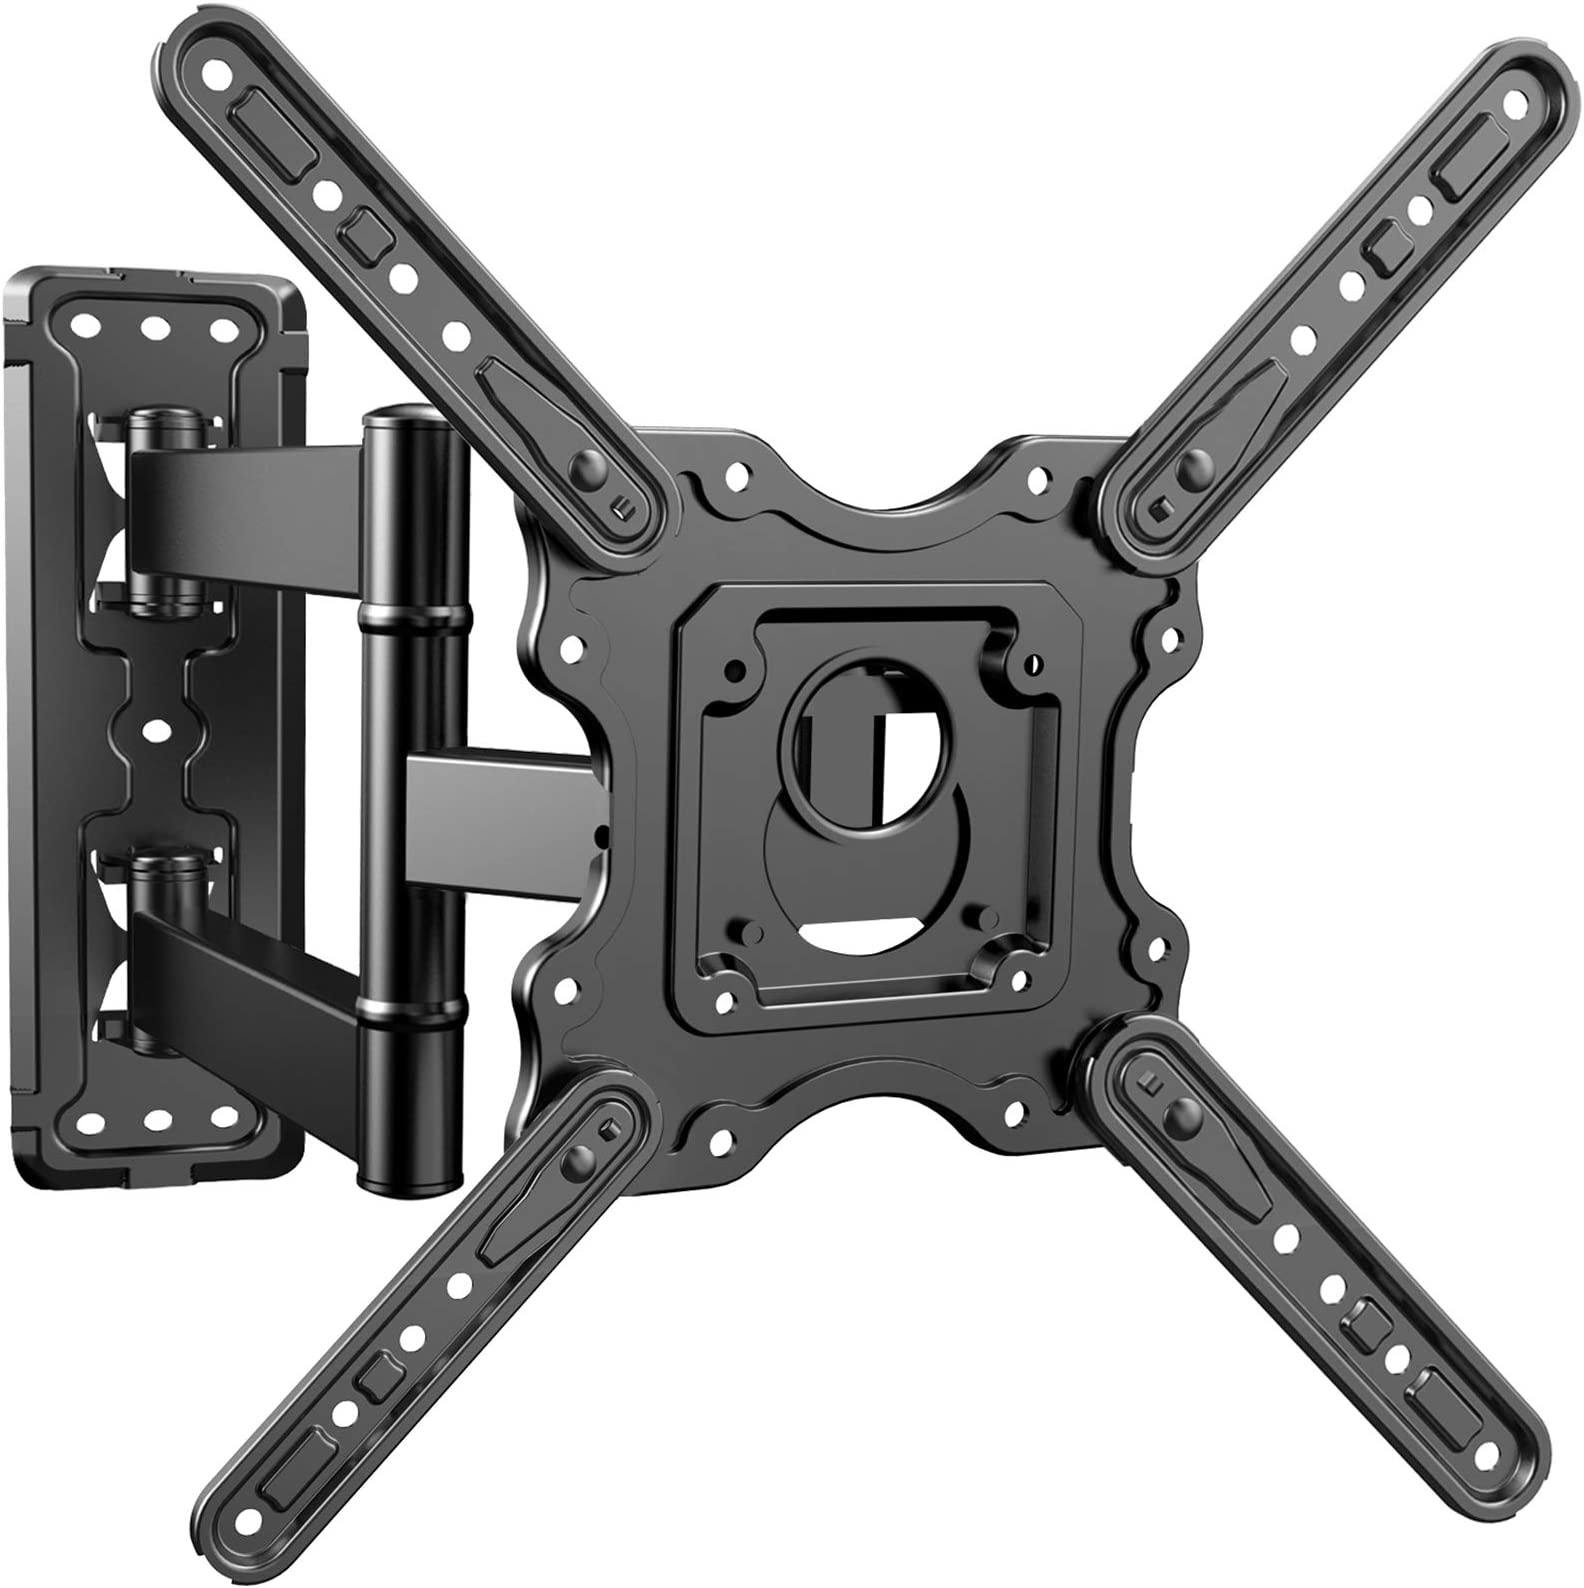 PERLESMITH Heavy Duty TV Wall Mount for Most 32-55 Inch Flat Curved TVs with Swivels Tilts & Extends - Full Motion TV Mount Fits LED, LCD, OLED 4K TVs Up to 88 lbs Max VESA 400x400, (PSMFK12)